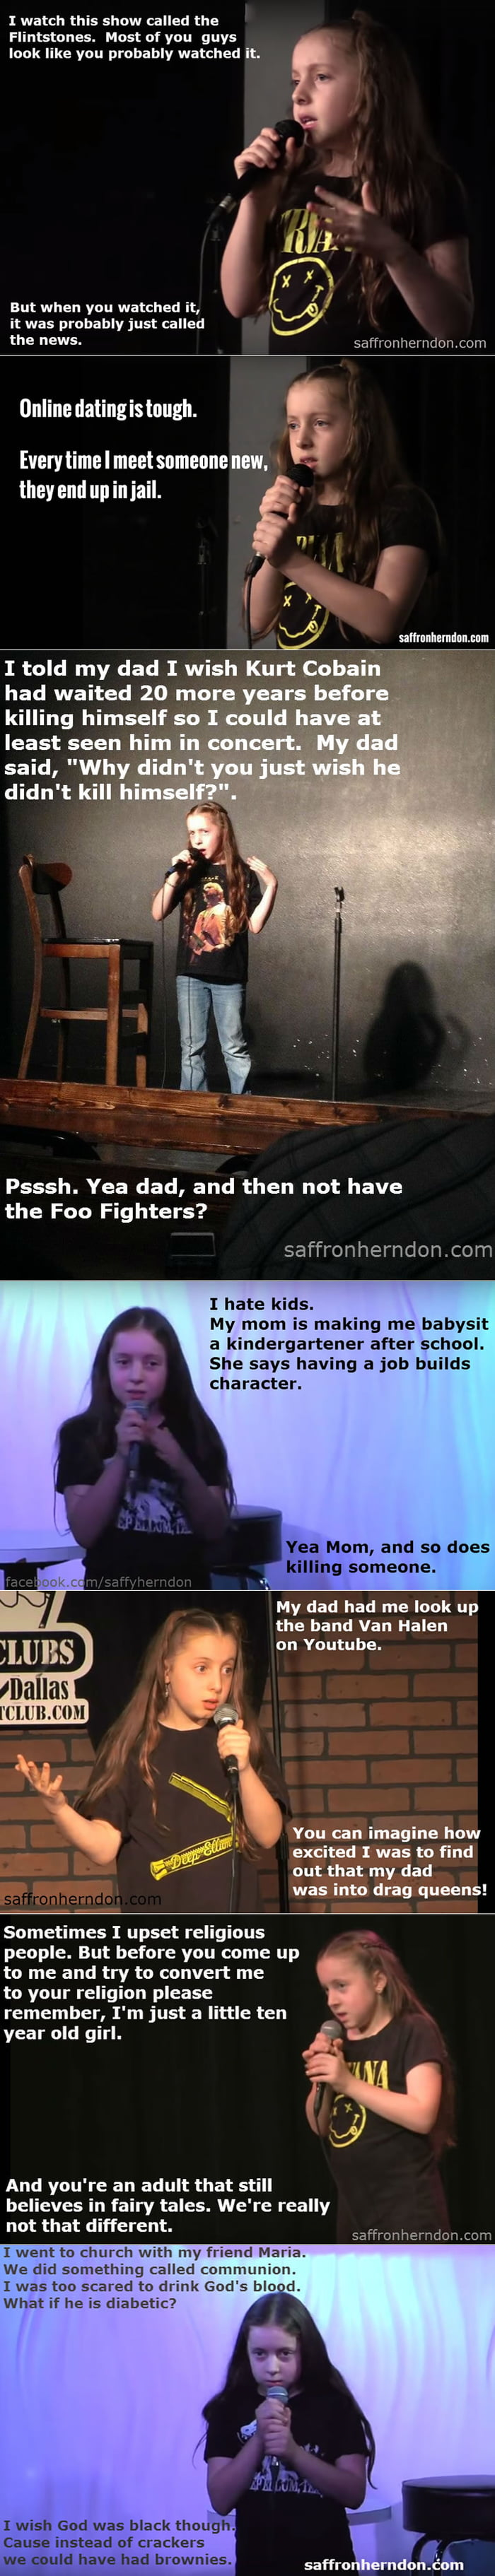 10-year-old comedian girl